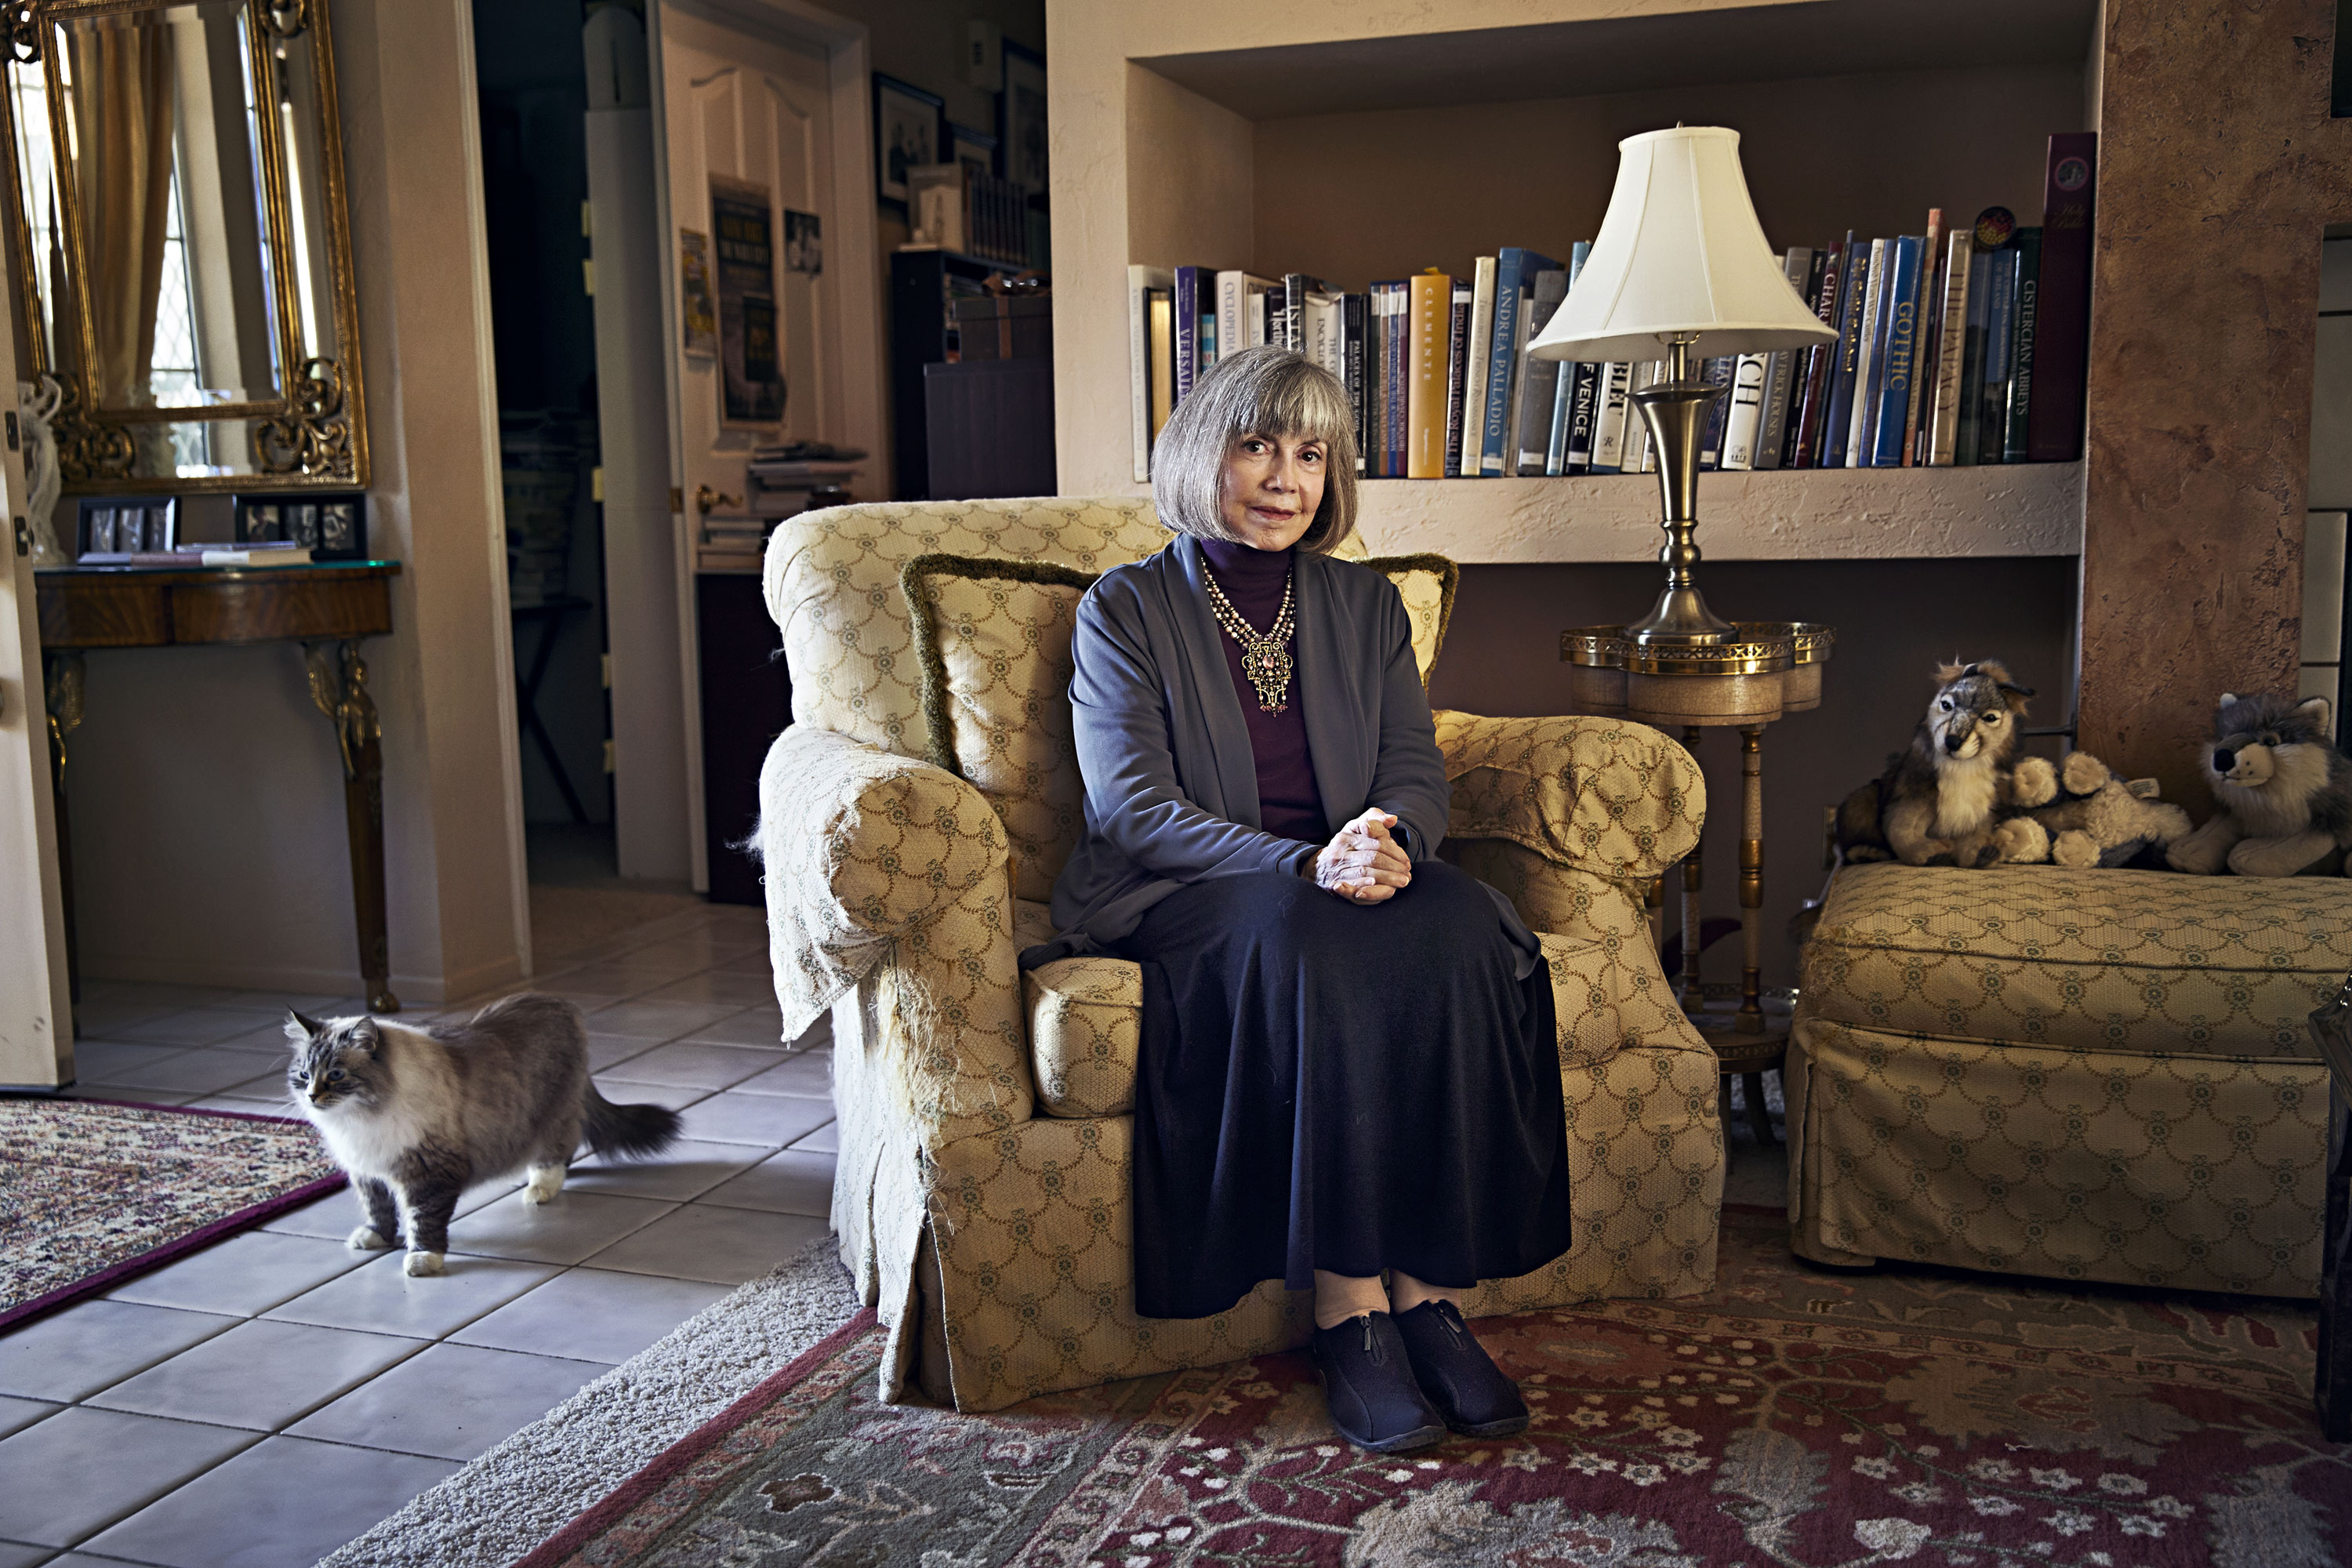 Author Anne Rice photographed at her home in Palm Desert, CA on October 16th, 2014.